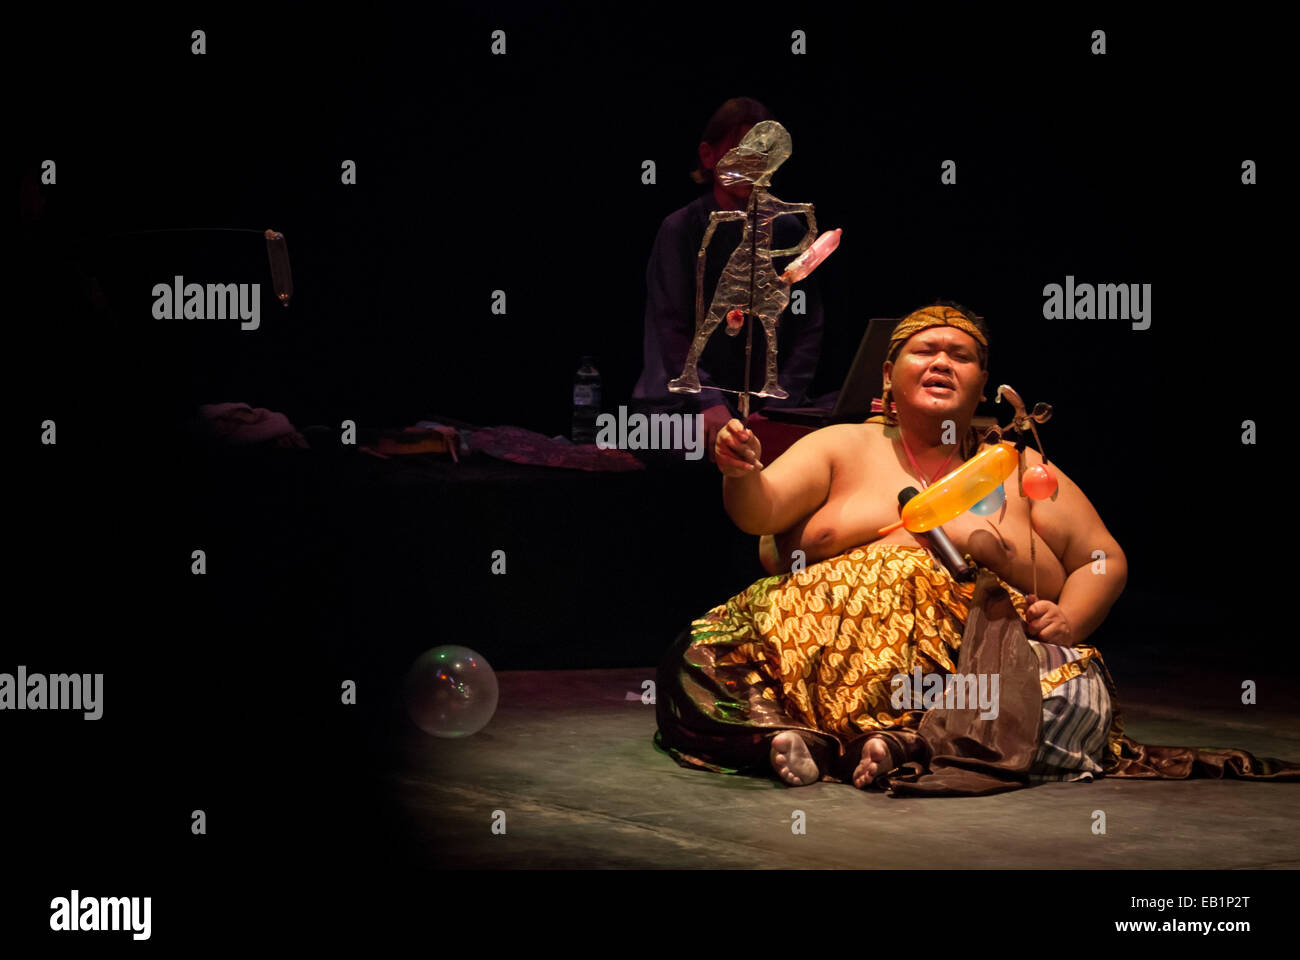 Slamet Gundono, a late Indonesian contemporary puppeteer during a show at Salihara Theater, Jakarta, Indonesia. - Stock Image